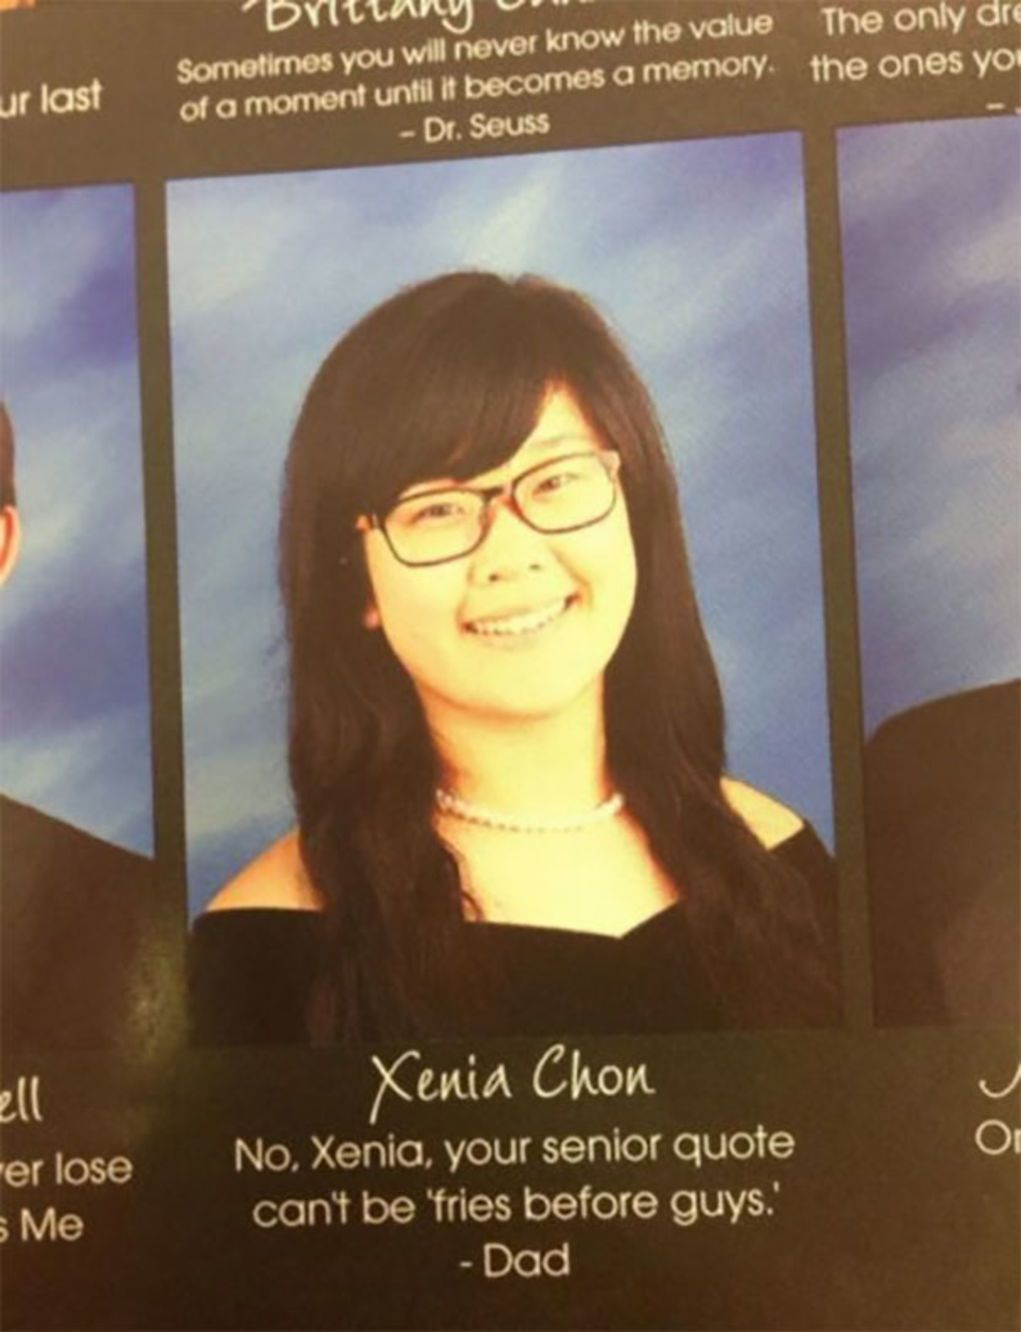 The Funniest Yearbook Quotes Of All Time BlazePress - The 28 funniest yearbook quotes of all time